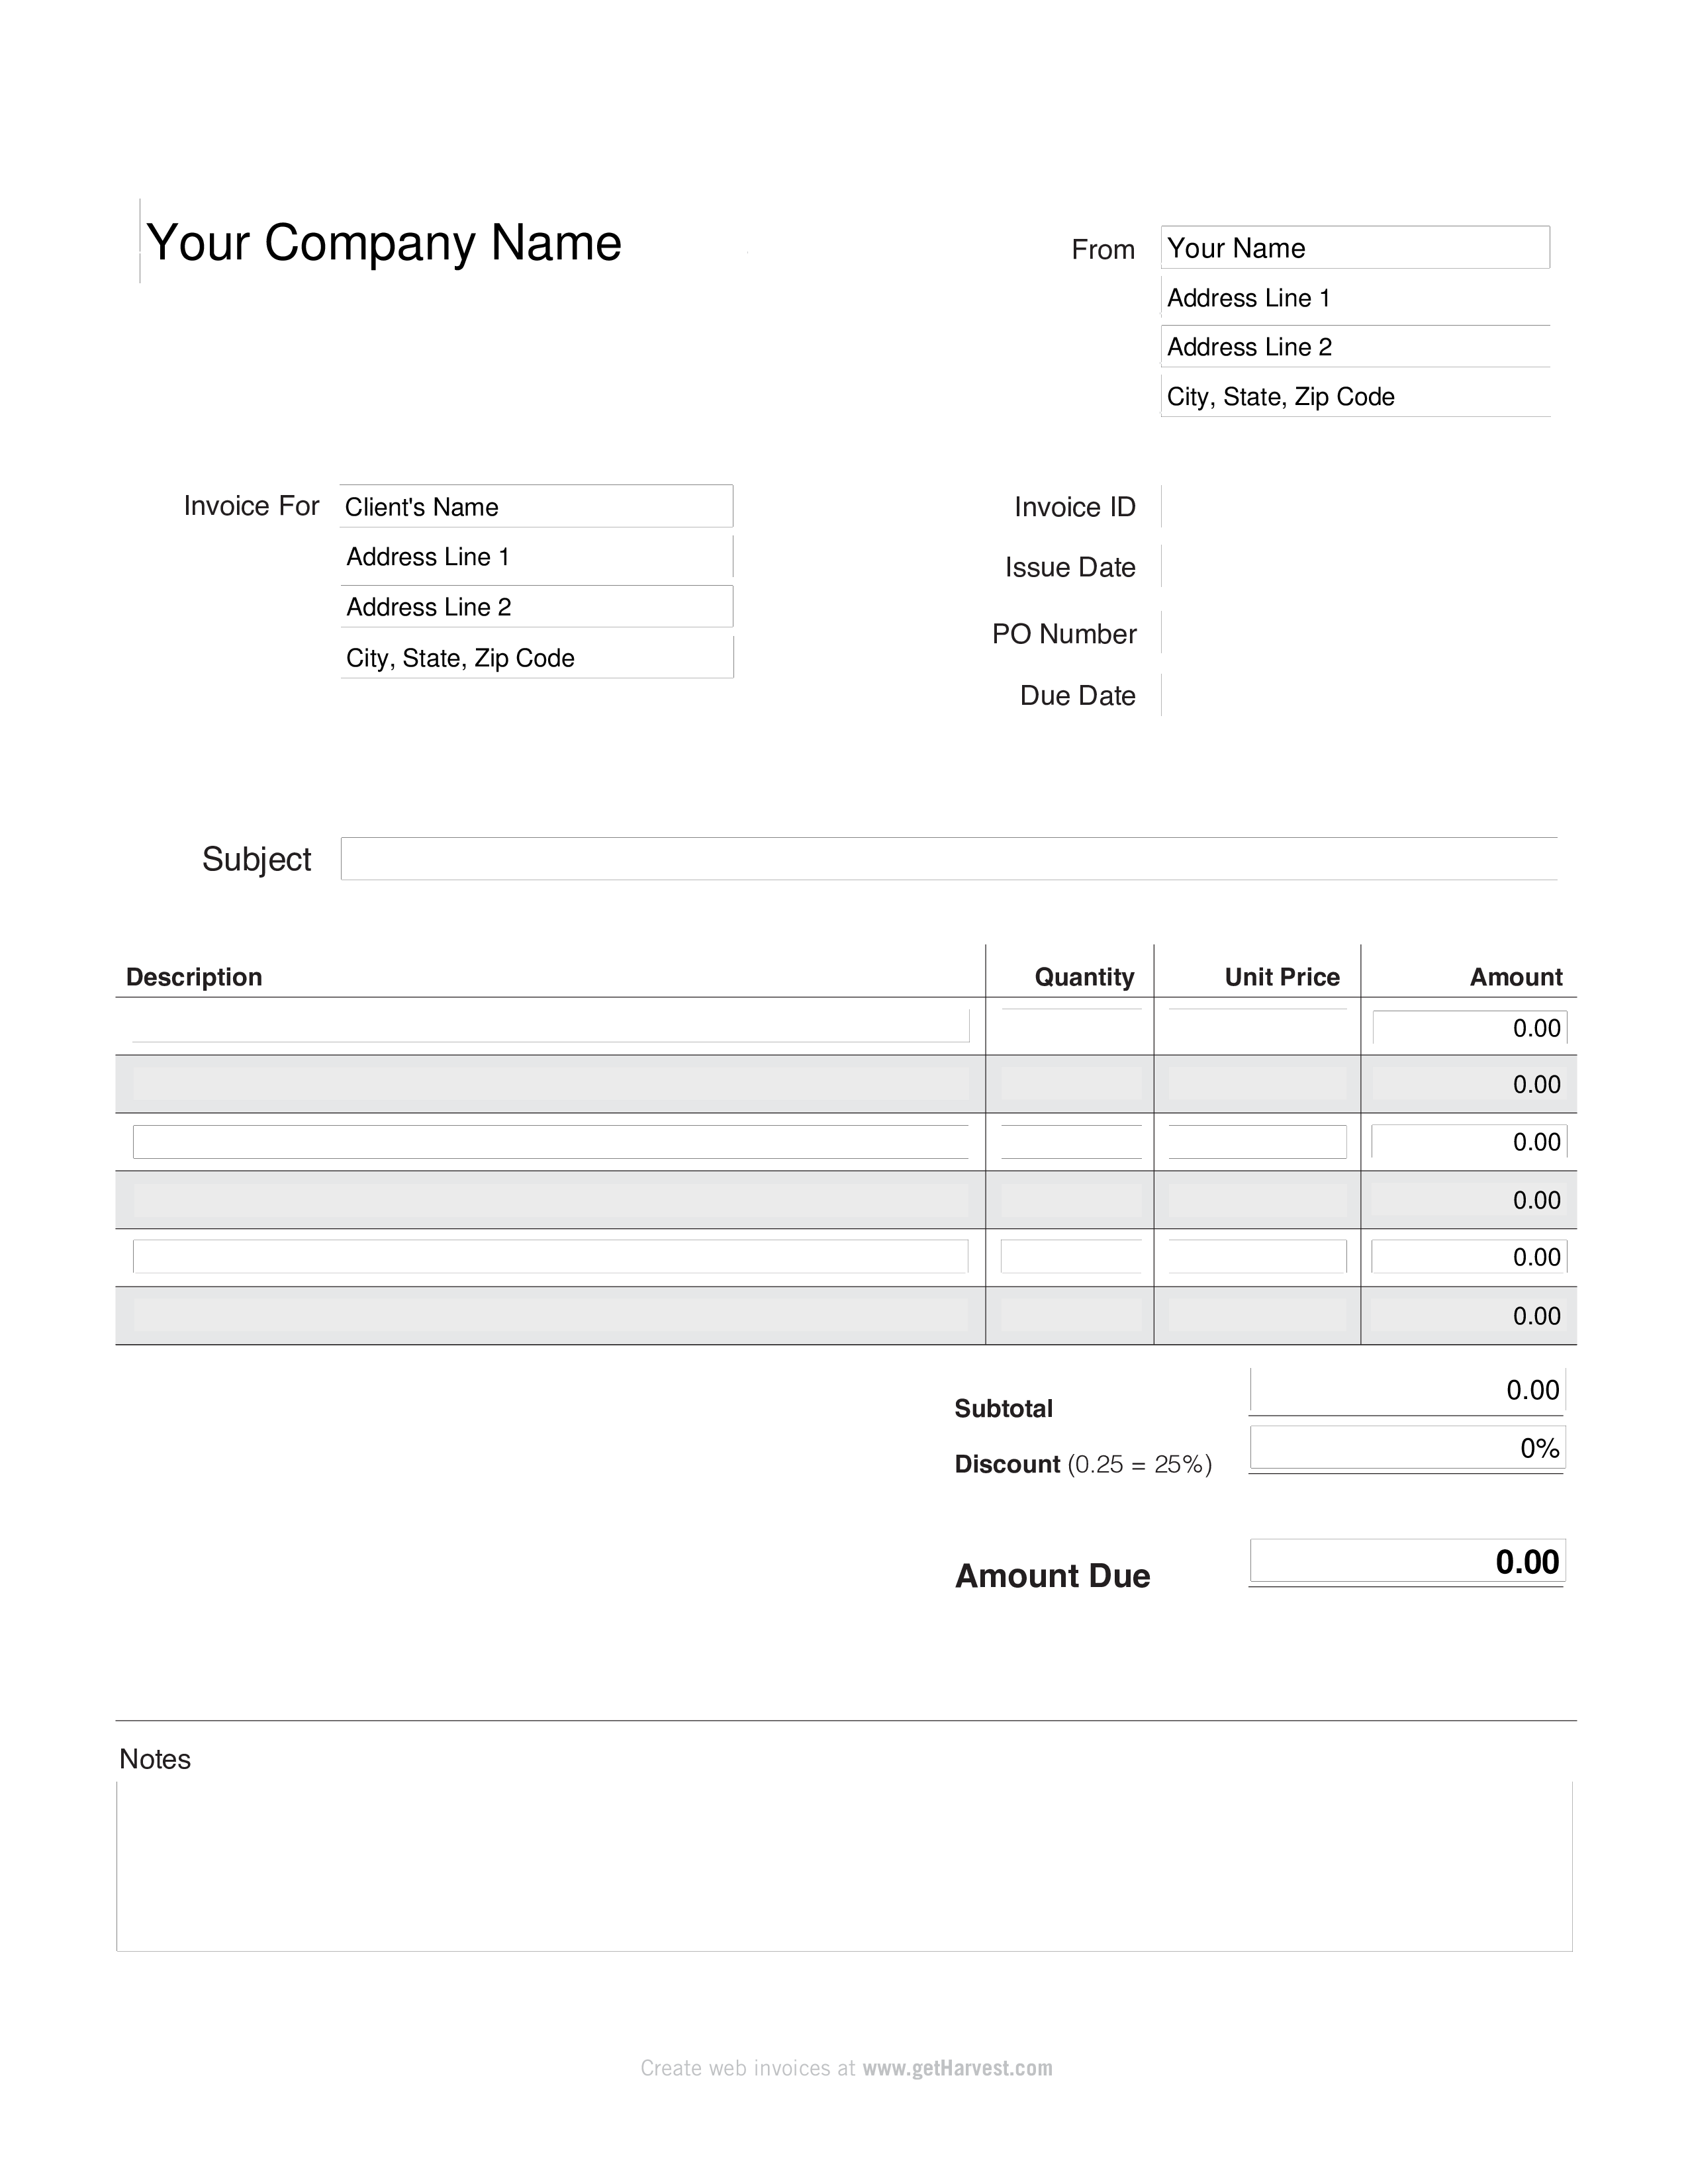 Free Home Bakery Invoice Templates At Allbusinesstemplates